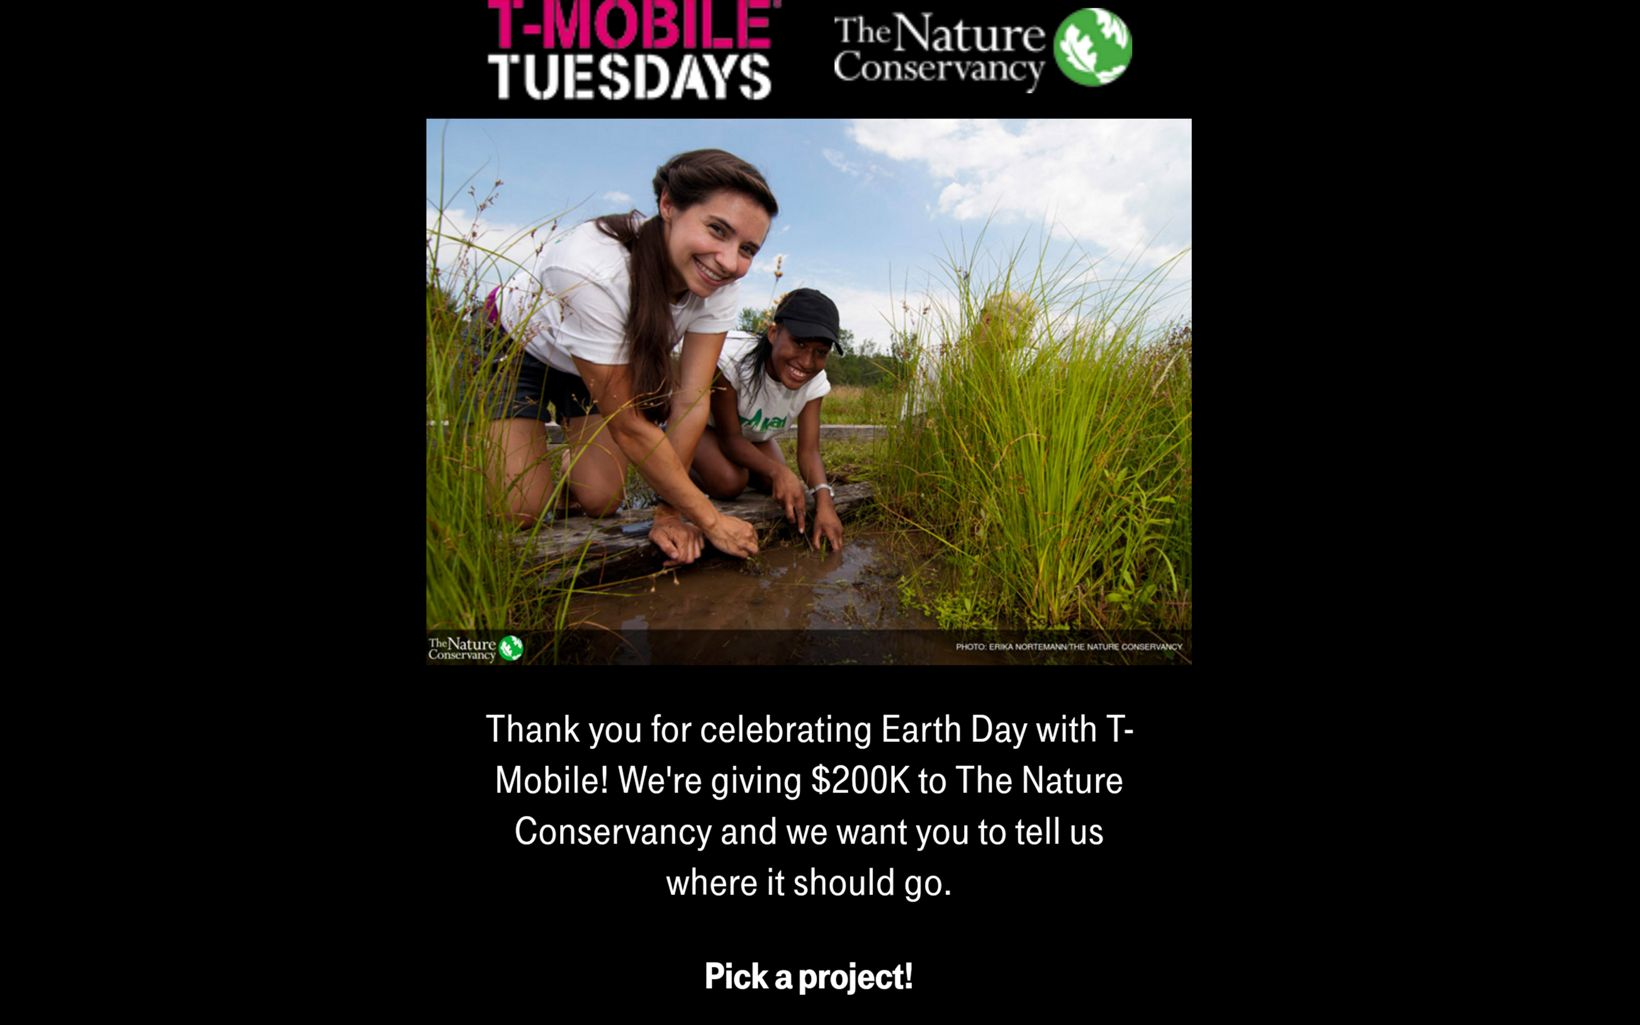 Screenshot of T-Mobile's in-app experience. T-Mobile customers and employees voted on which projects to support as part a $200K contribution to TNC on Earth Day 2018.